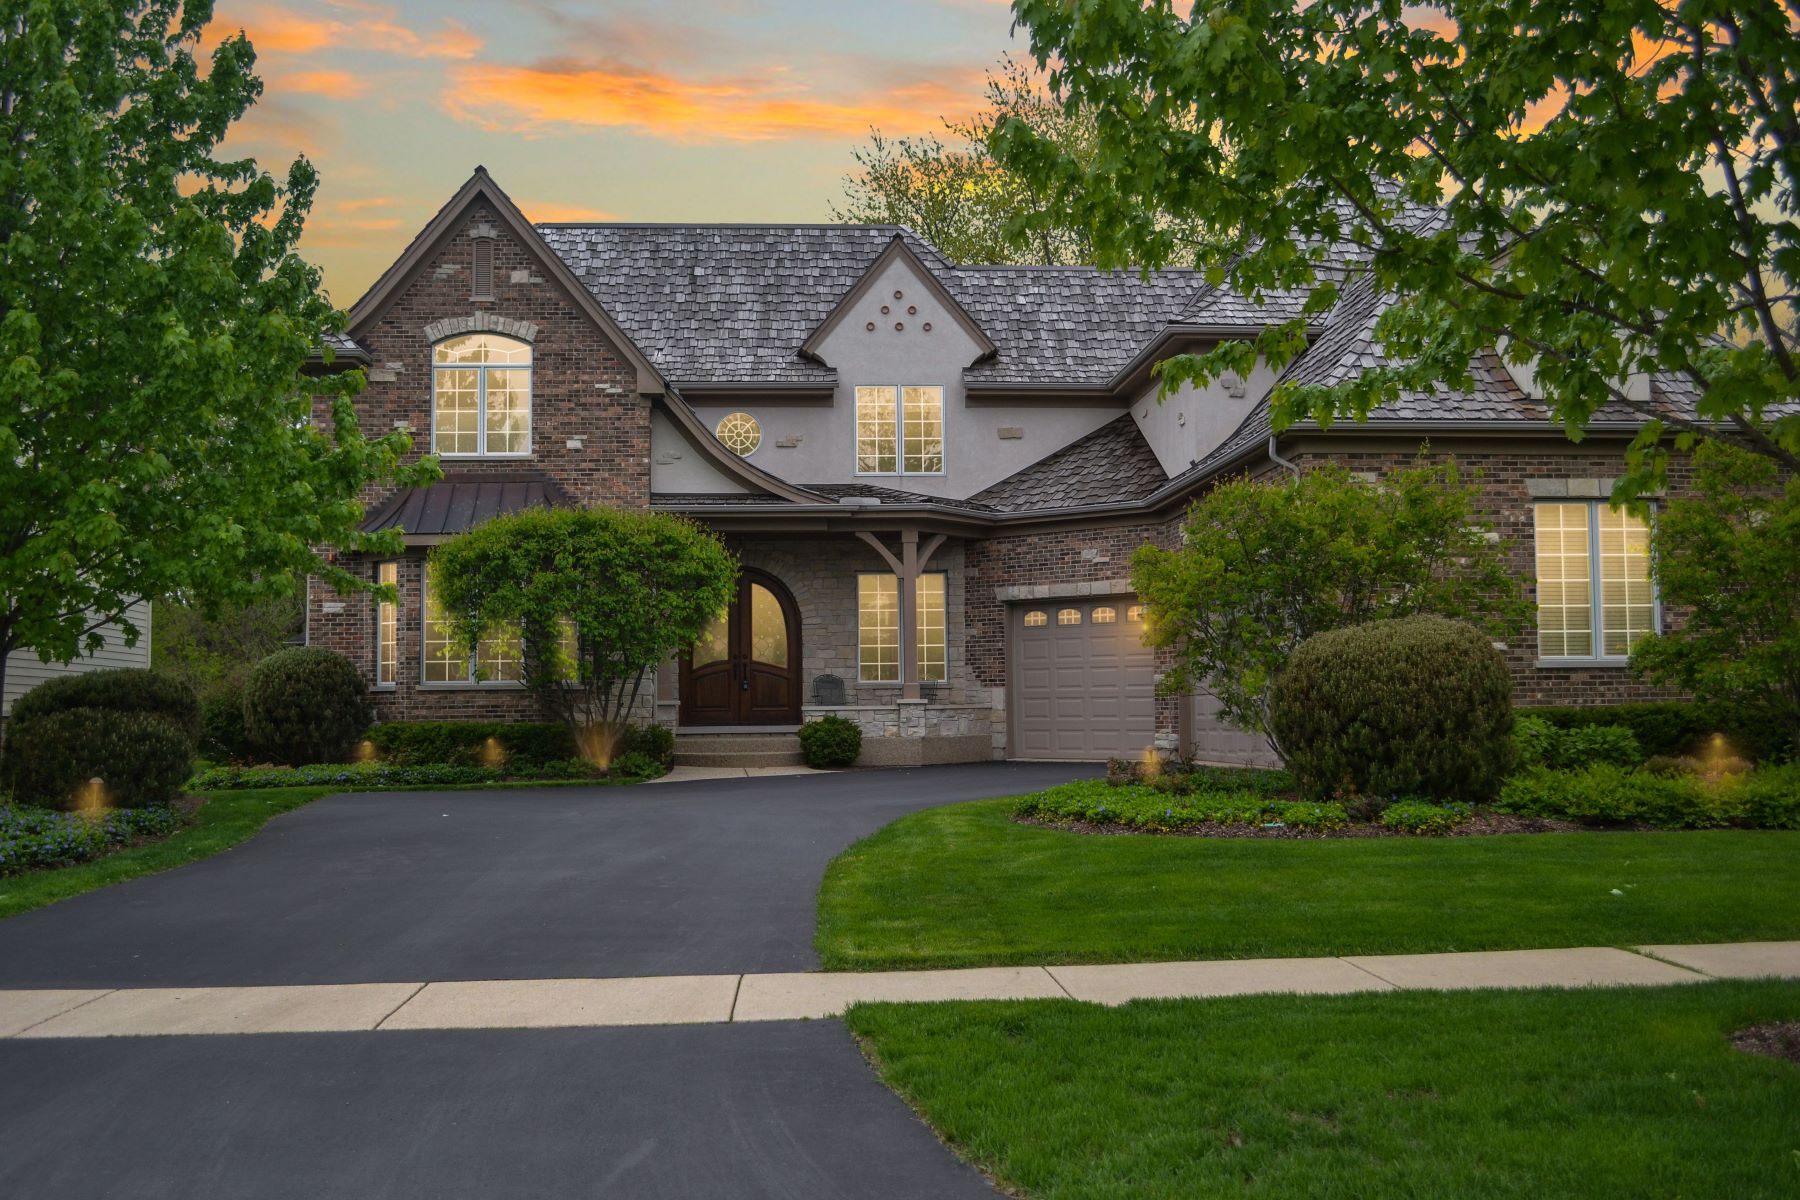 Single Family Homes for Active at Impeccably Appointed Custom Brick Home 611 Ames Street Libertyville, Illinois 60048 United States